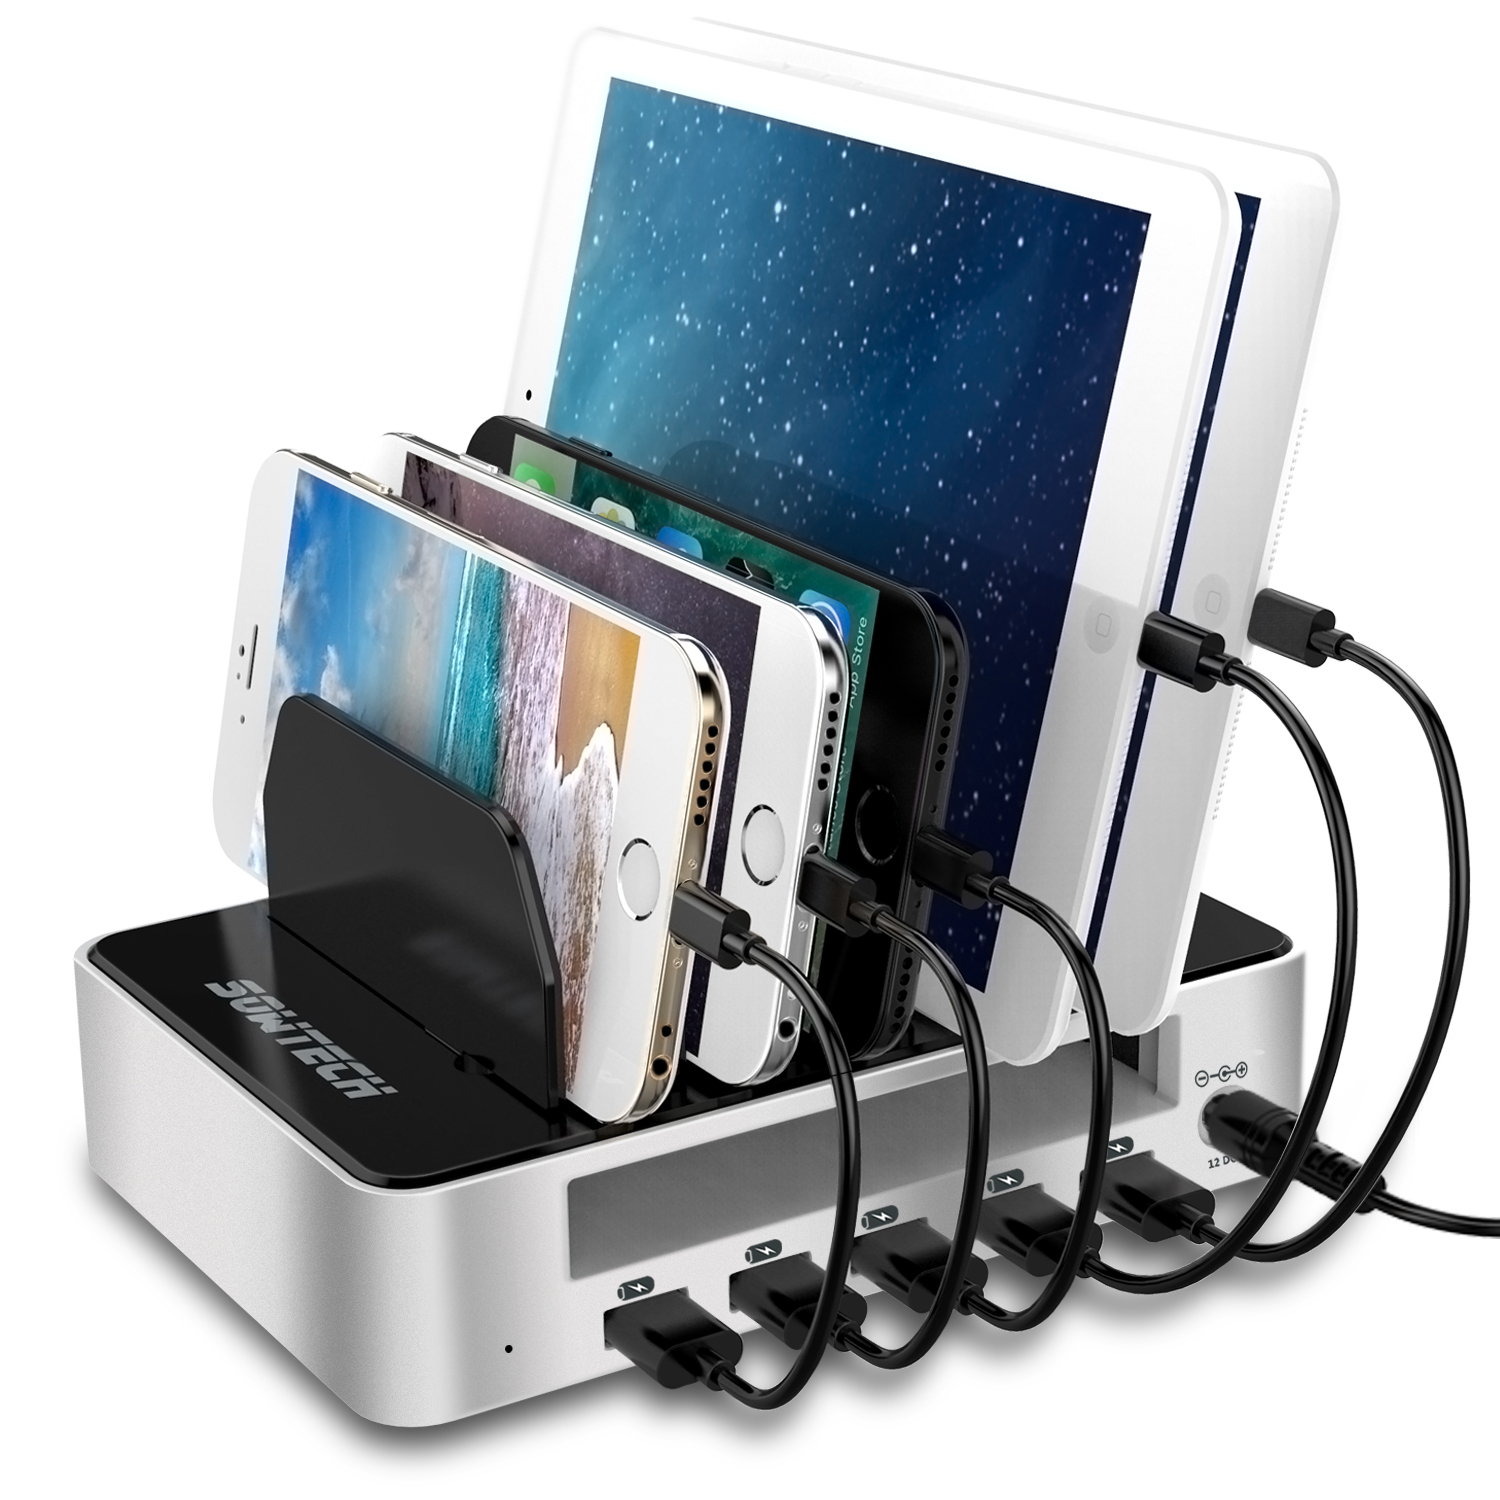 USB Charging Station, SOWTECH 5-Port Charging Stand Docking Station Multi-Port USB Ports Detachable Baffles for iPhone/iPad/Smart Phone/Tablets